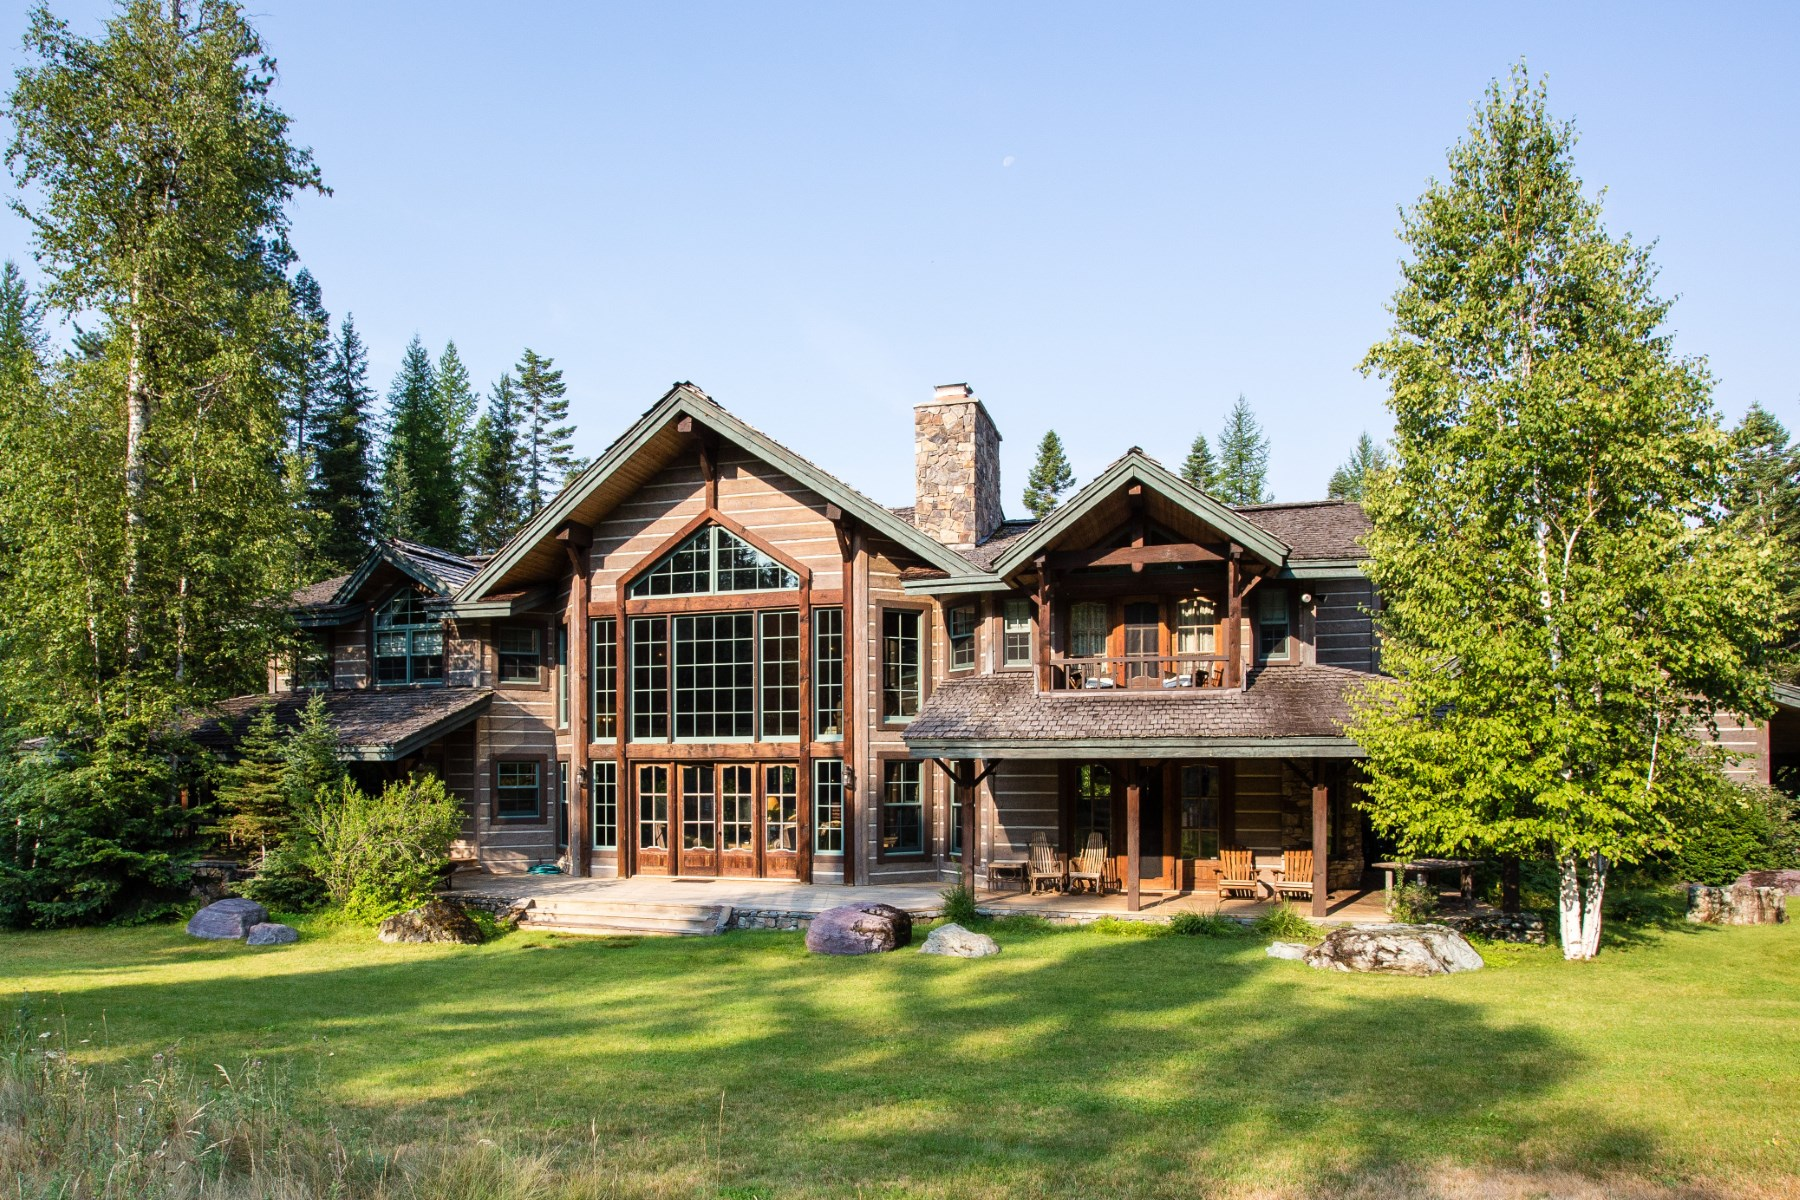 Single Family Home for Sale at Rare Custom Built Home 155 Colt Trail Bigfork, Montana, 59991 United States